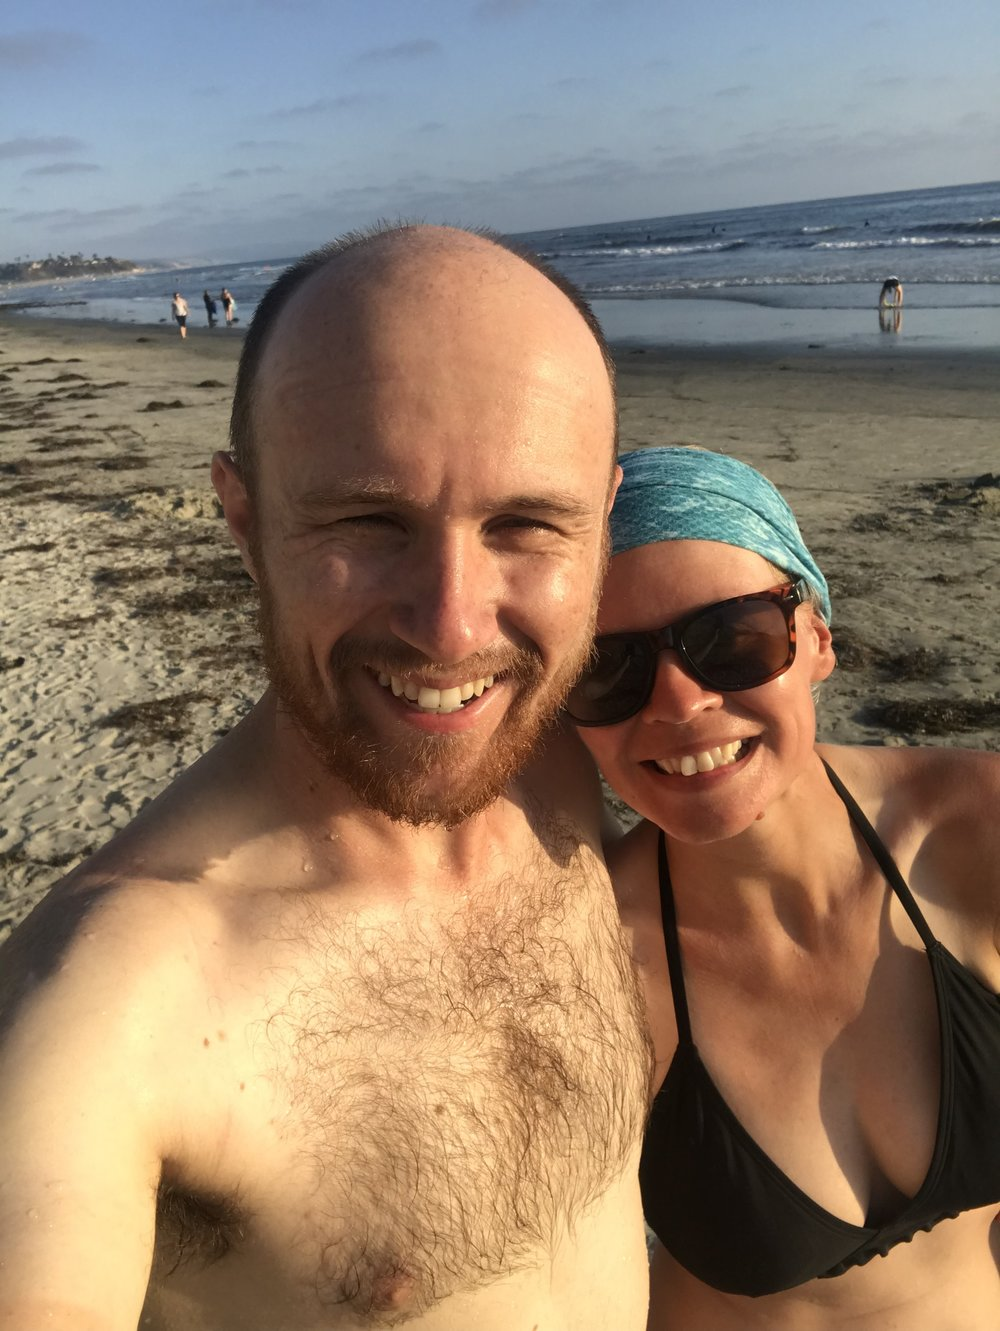 Went for a quick swim once we got to San Elijo. The water was warm!